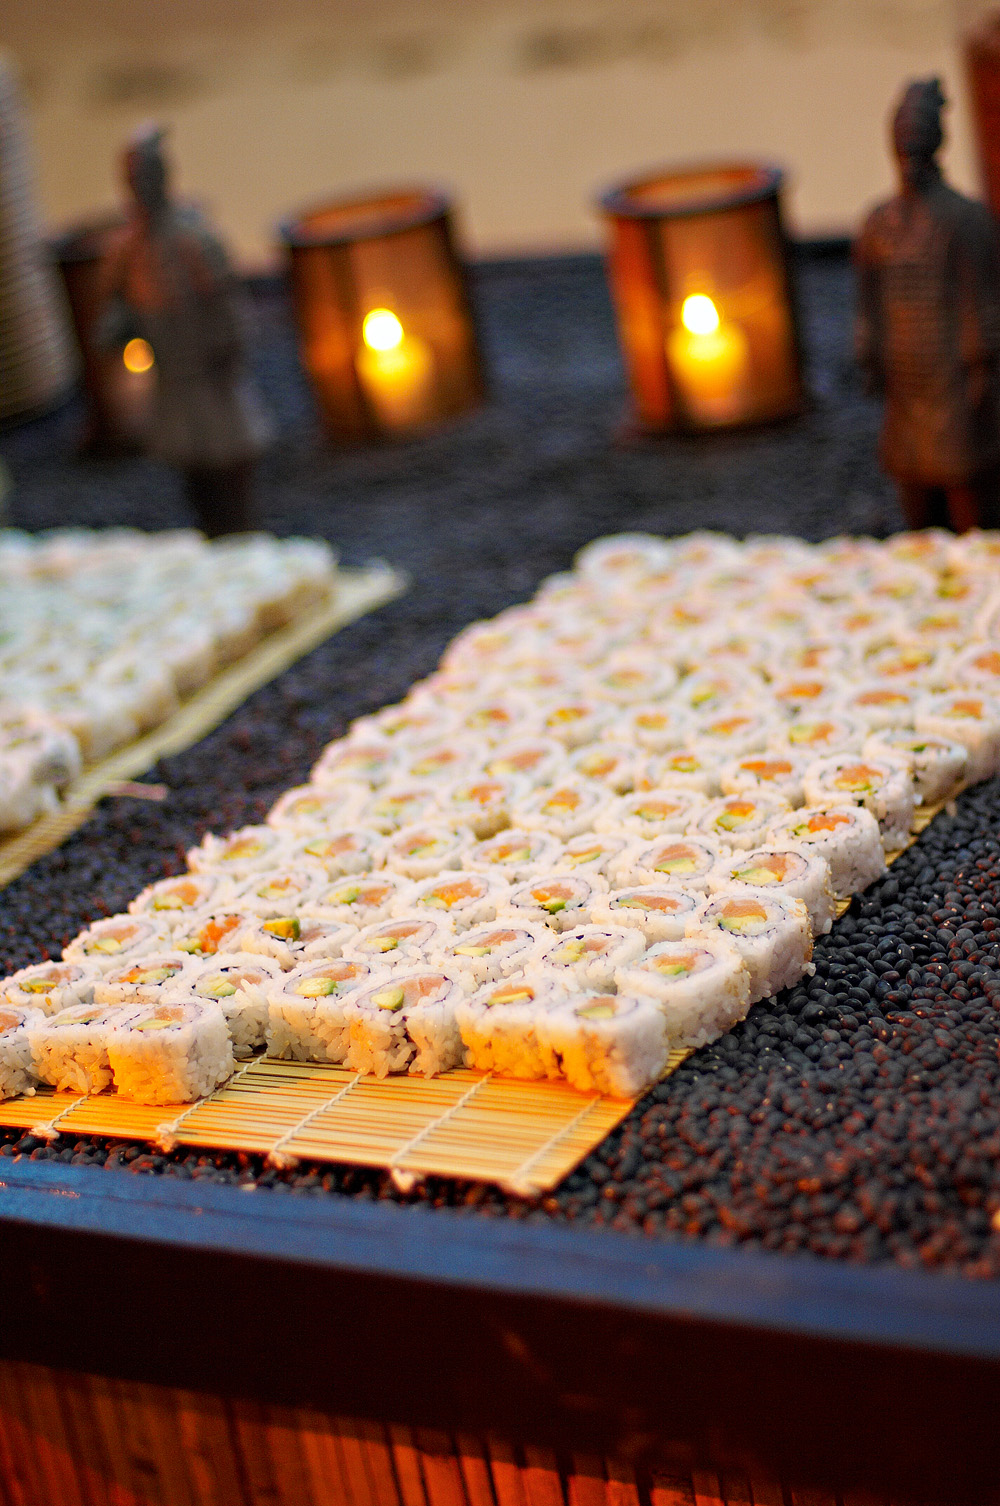 Taste sushi bars always a popular food station at for Food bar ideas for a party